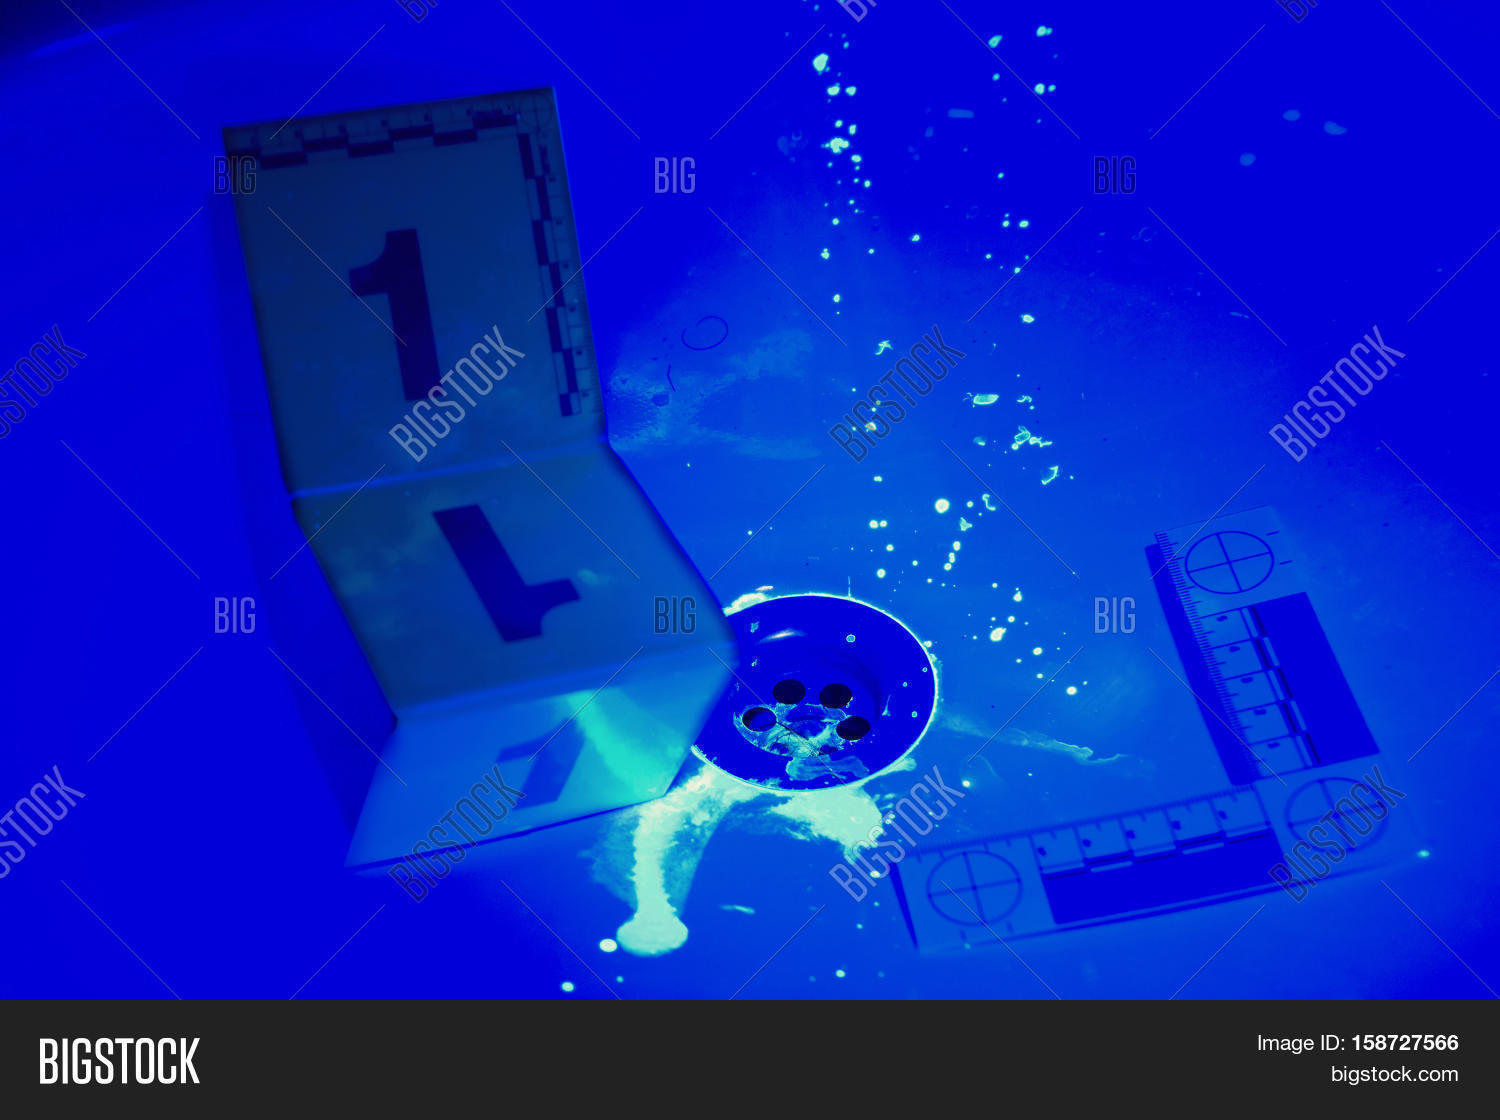 Bathroom Under Light collecting of evidences under uv light in bathroom stock photo